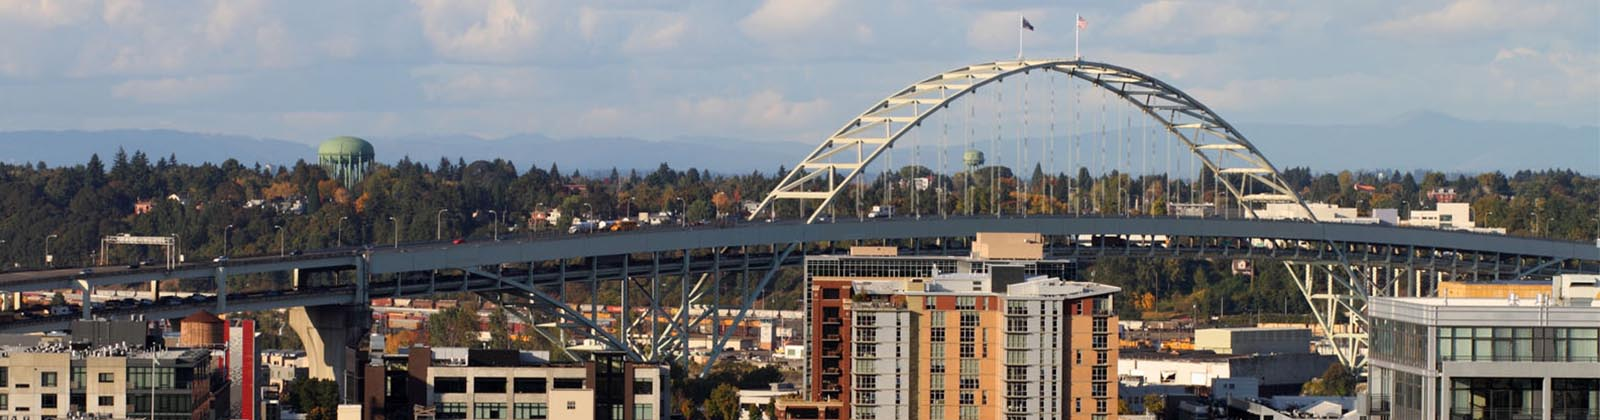 Portland Fremont bridge and downtown